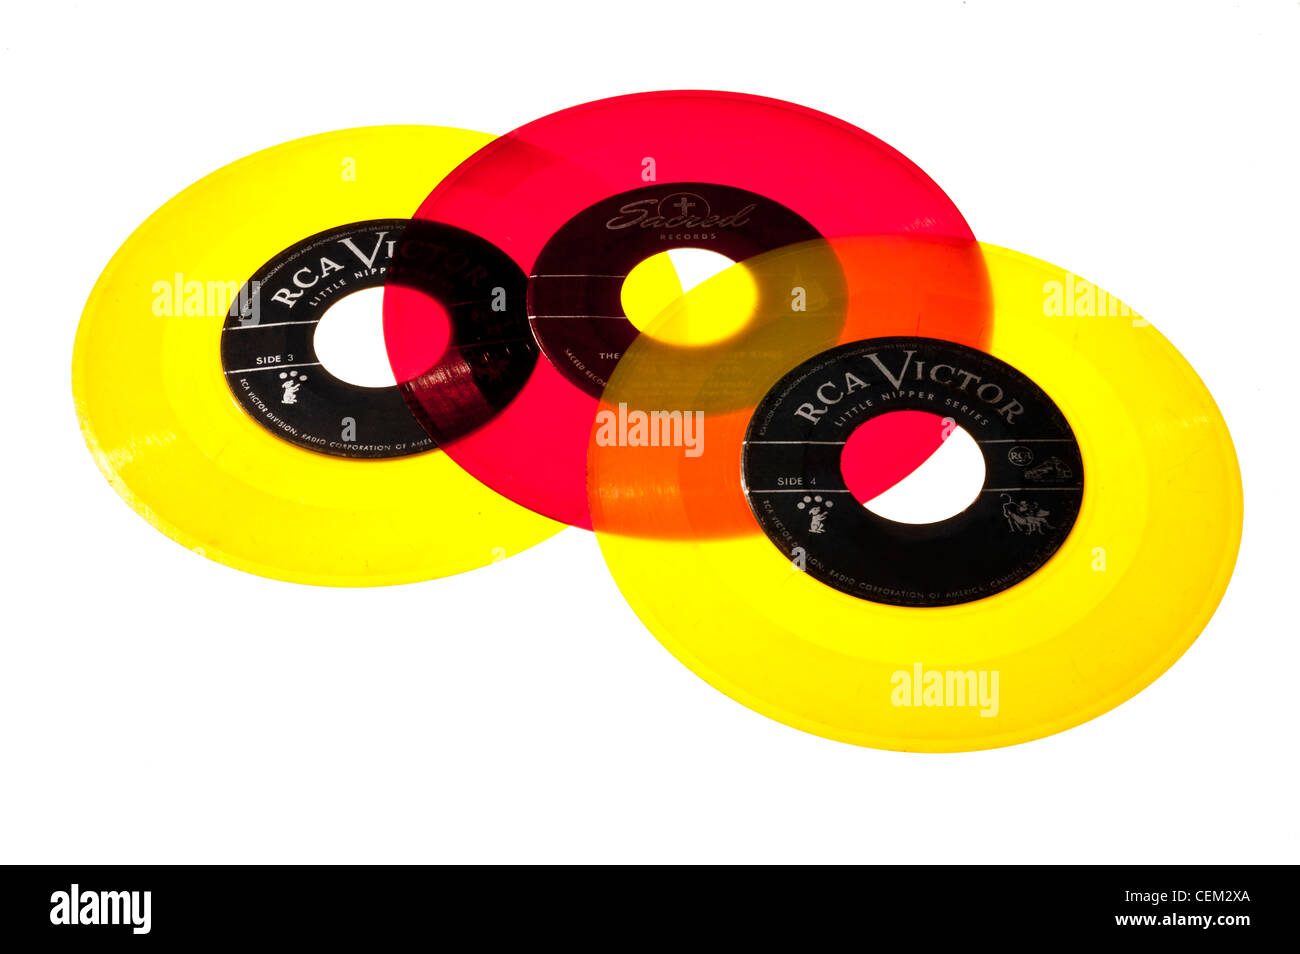 45 RPM records from the 1950's. mid-century modern, Vinyl - Stock Image